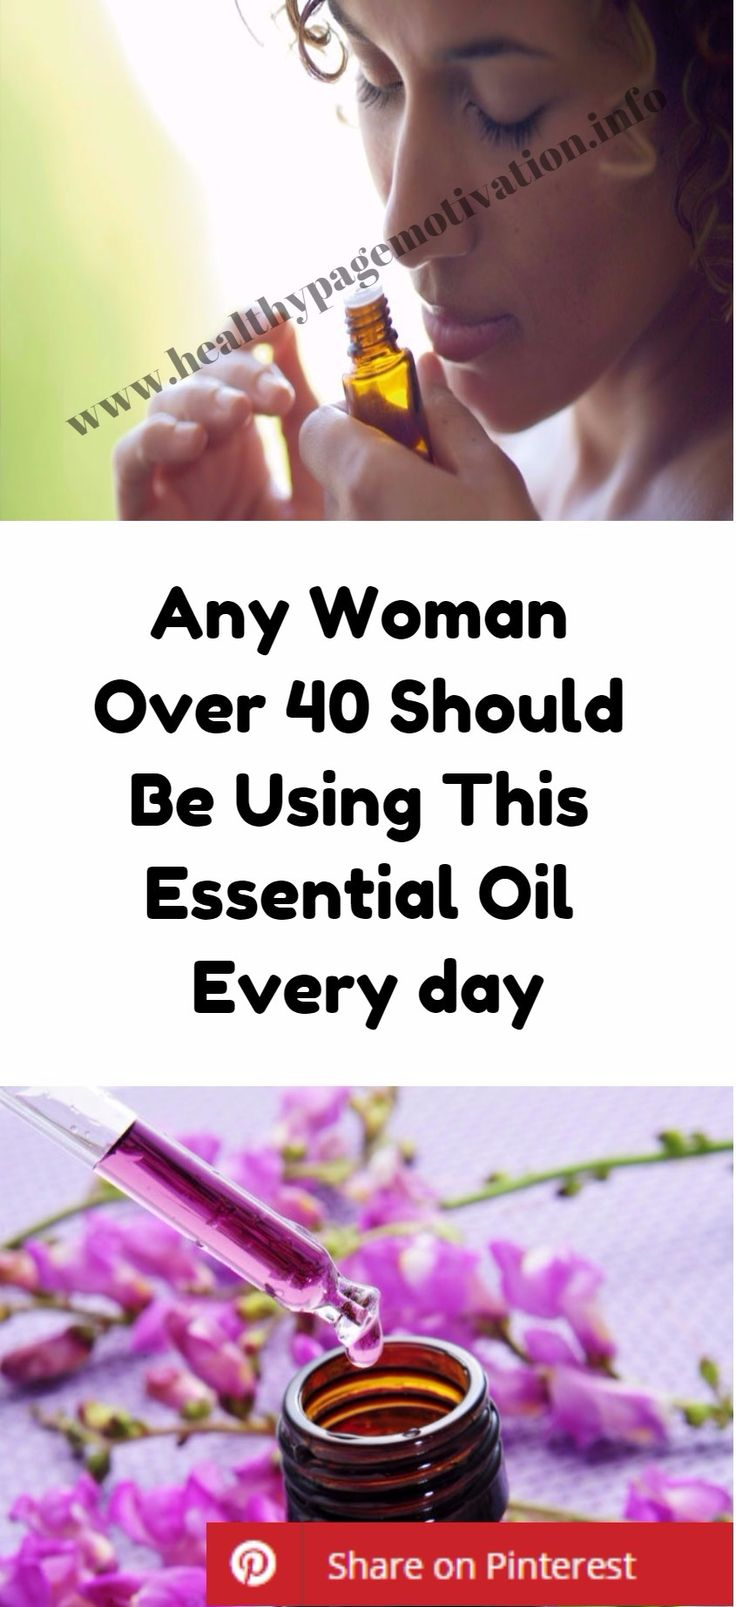 Any Woman Over 40 Should Be Using This Essential Oil Every